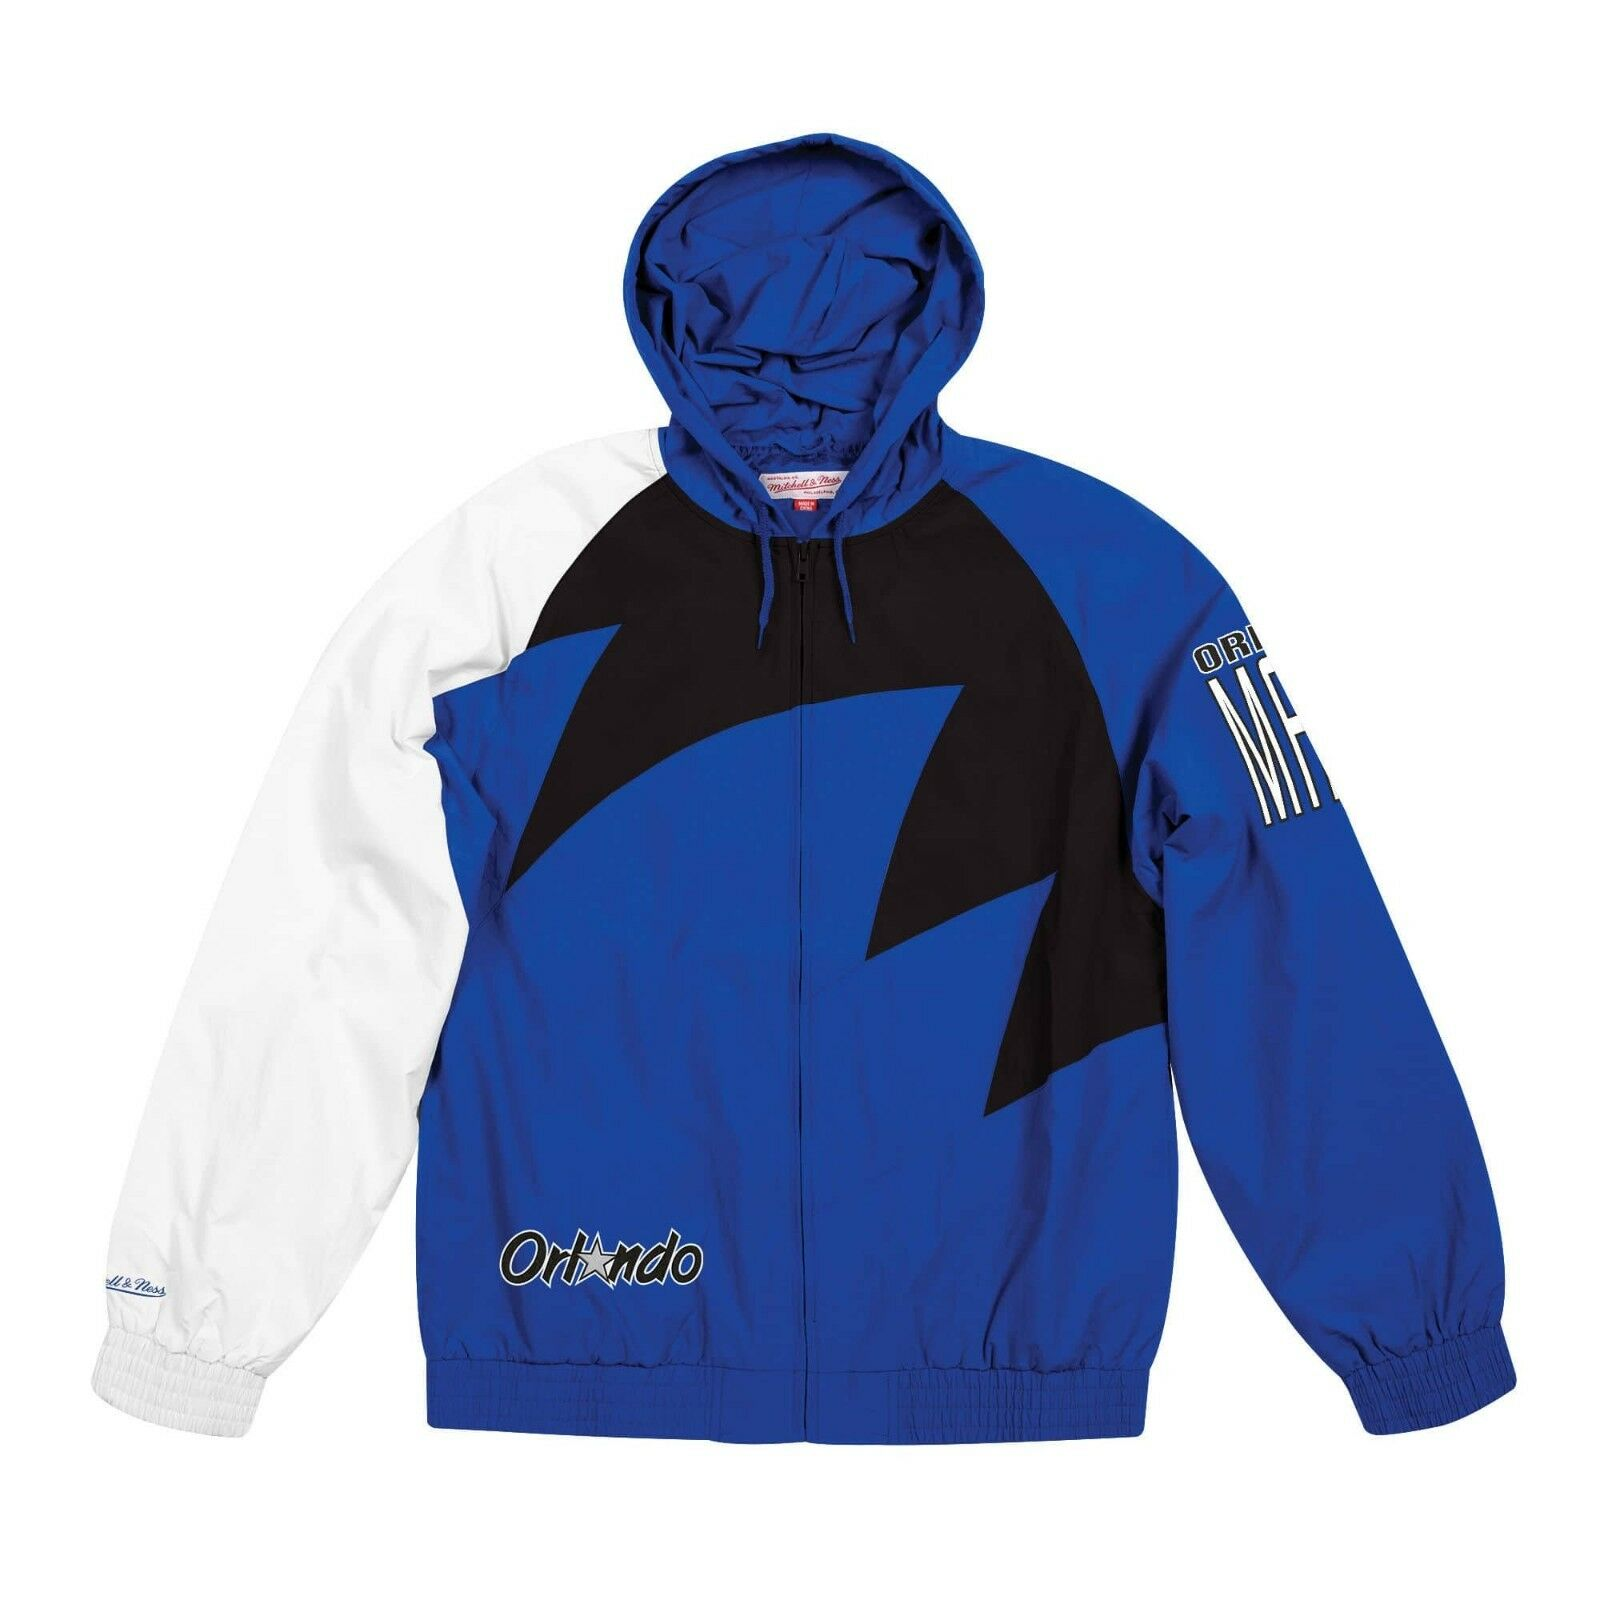 Details about Authentic NBA Orlando Magic Mitchell   Ness Shark Tooth  Full-Zip Jacket f84e6db00c0f